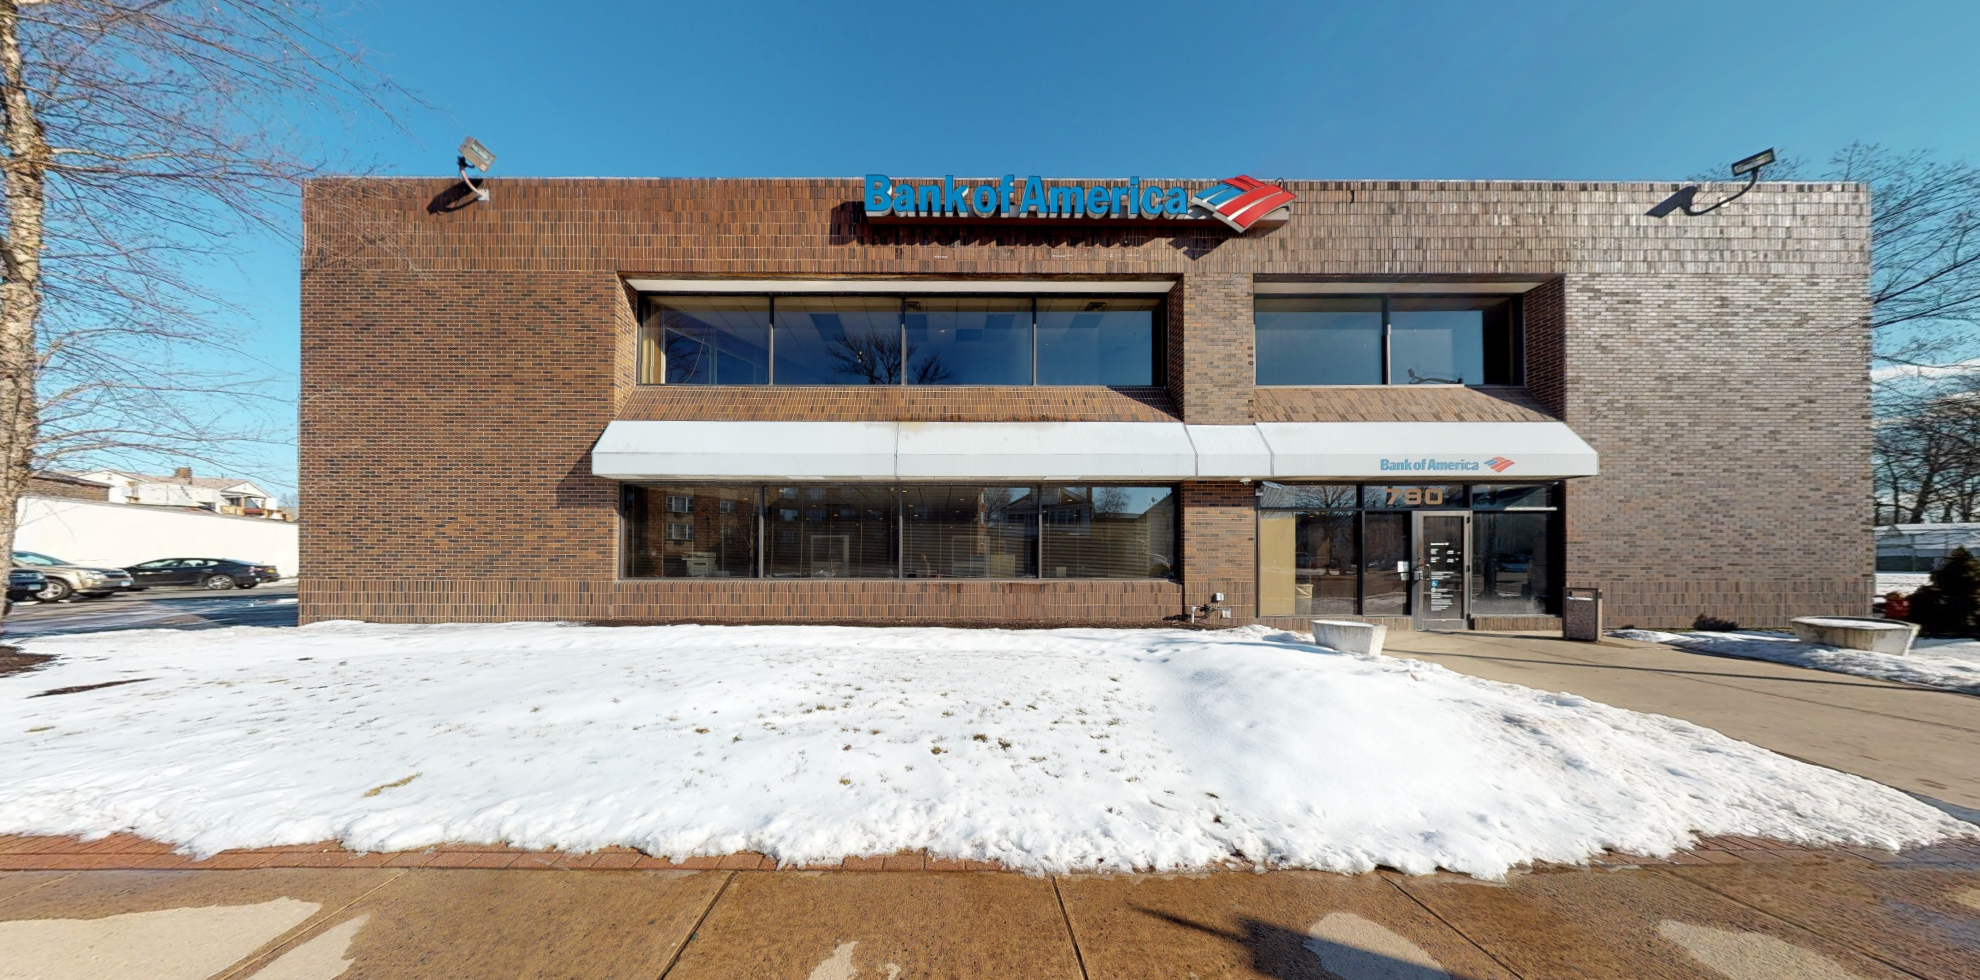 Bank of America financial center with drive-thru ATM   790 Maple Ave, Hartford, CT 06114